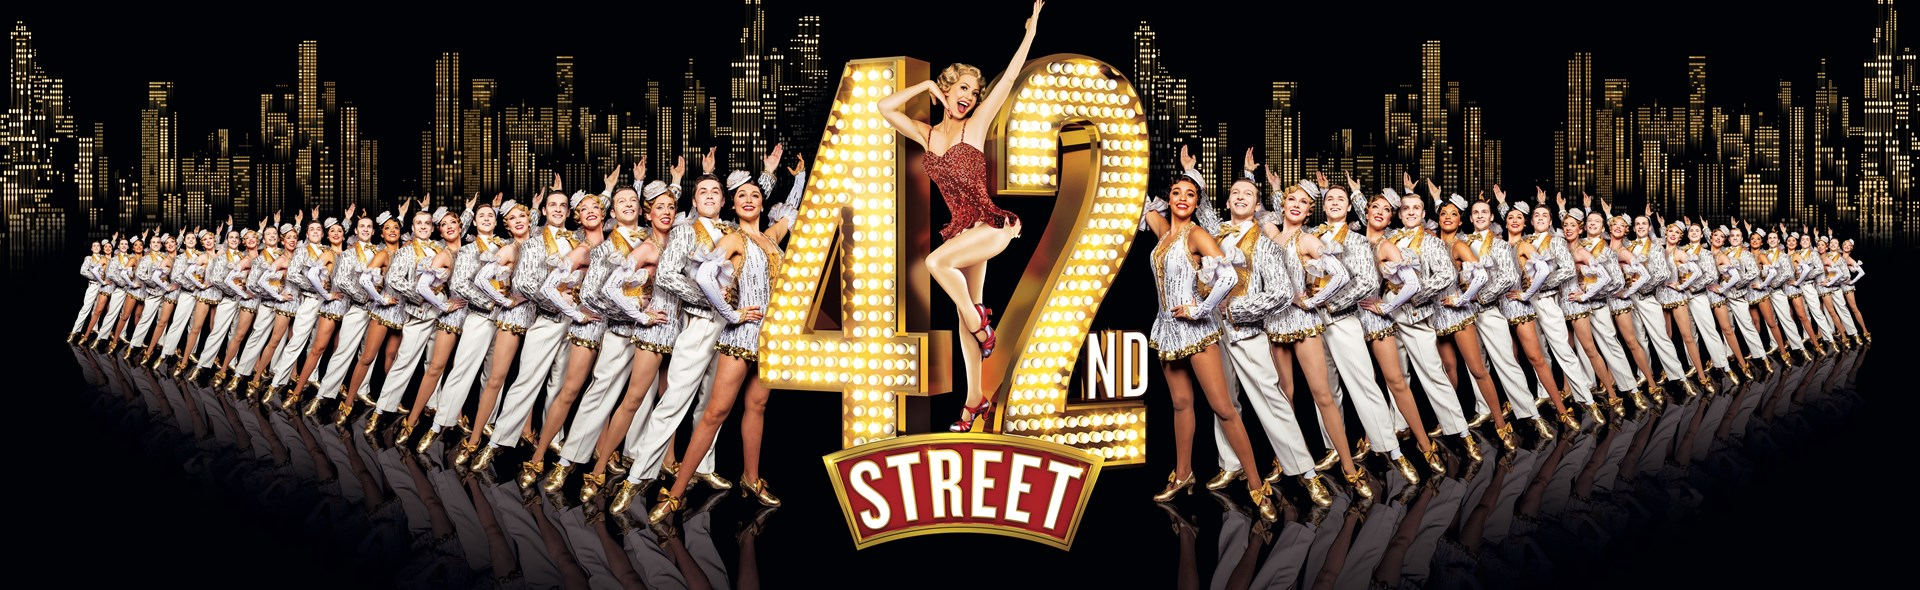 42nd Street - The Musical (PG)